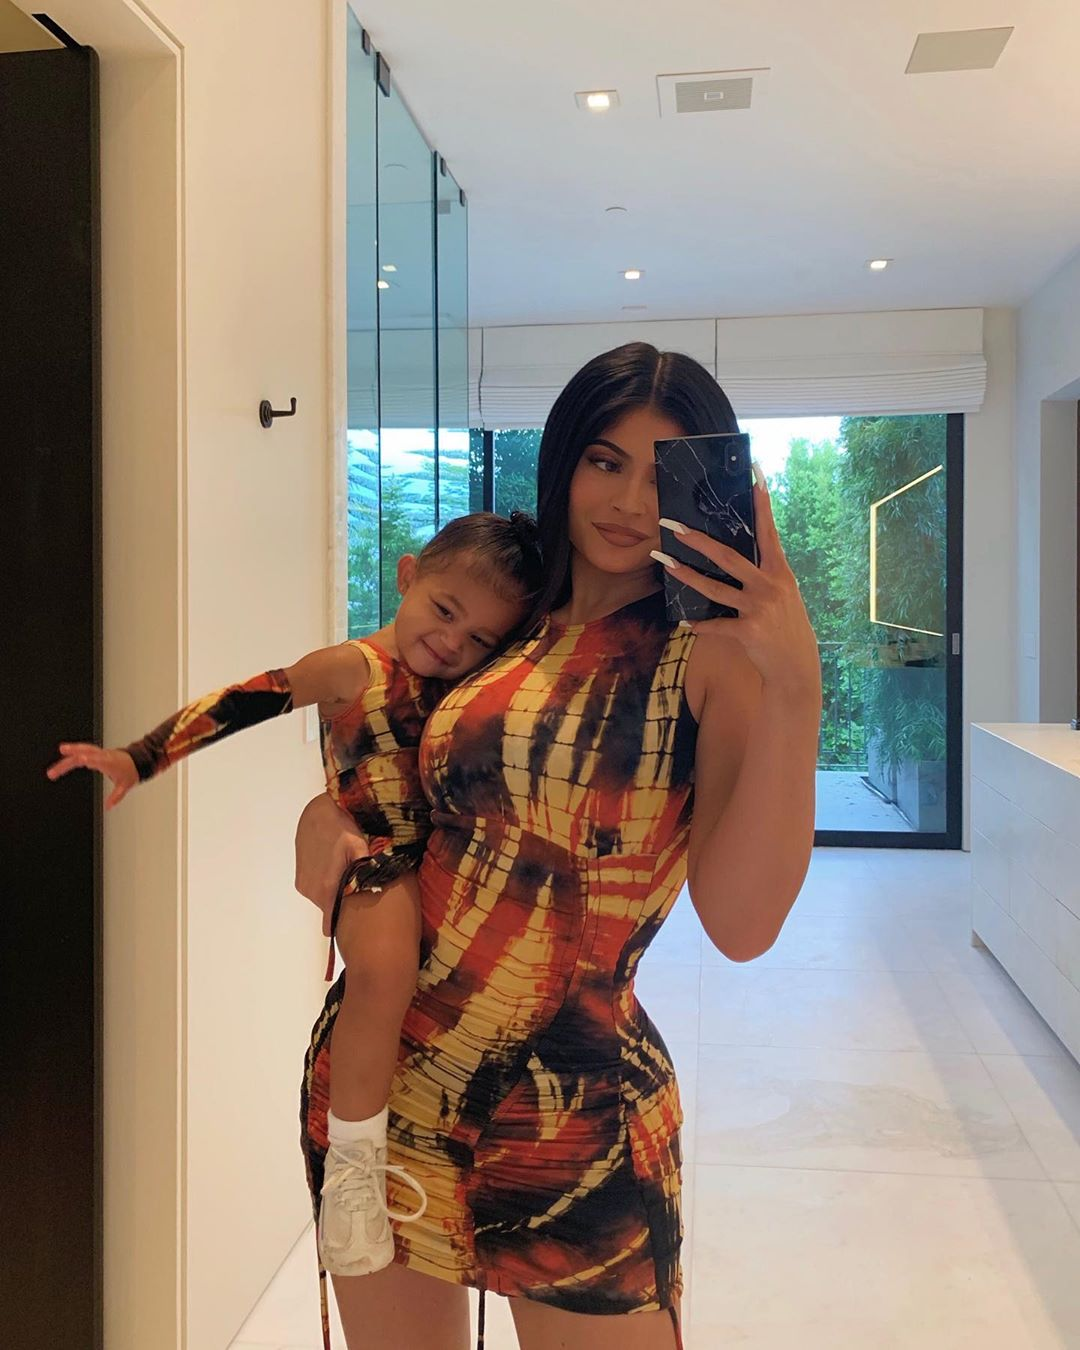 This New Video of Kylie Jenner and Baby Stormi Saying 'I Love You' Legit Has Us Crying